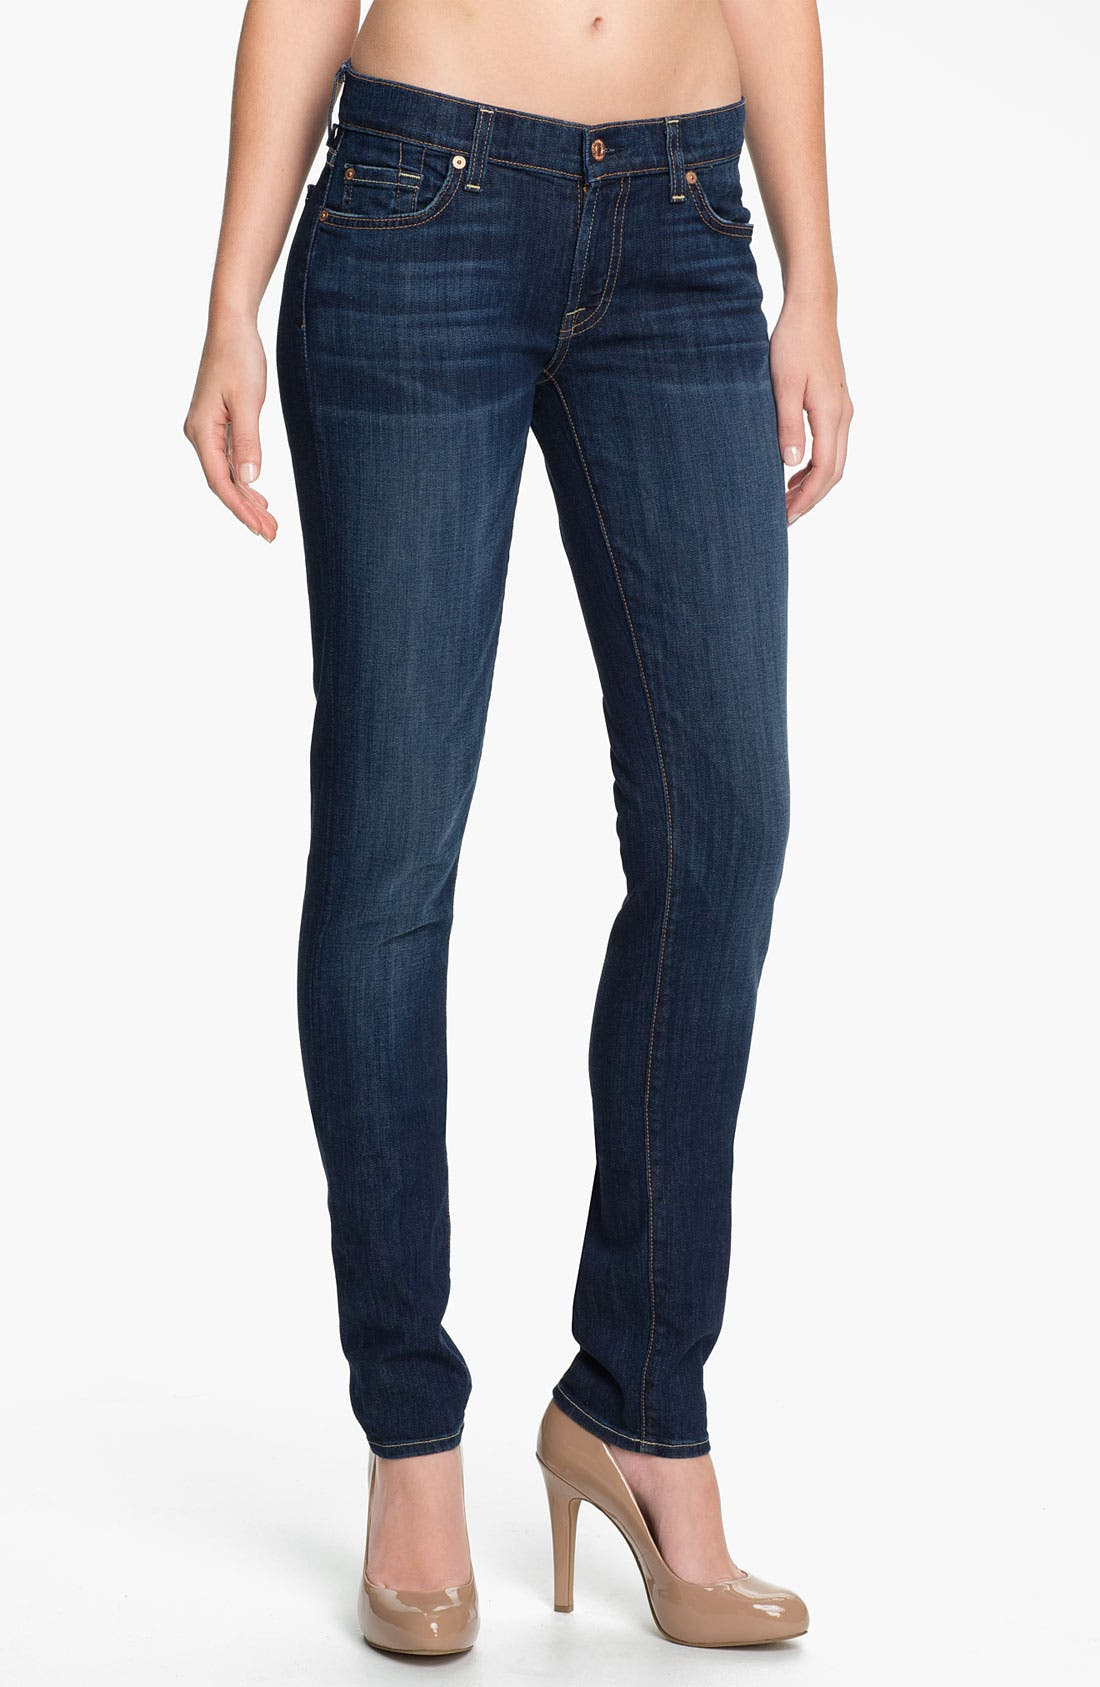 Alternate Image 1 Selected - 7 For All Mankind® 'Roxanne' Skinny Stretch Jeans (Warm Medium Blue)